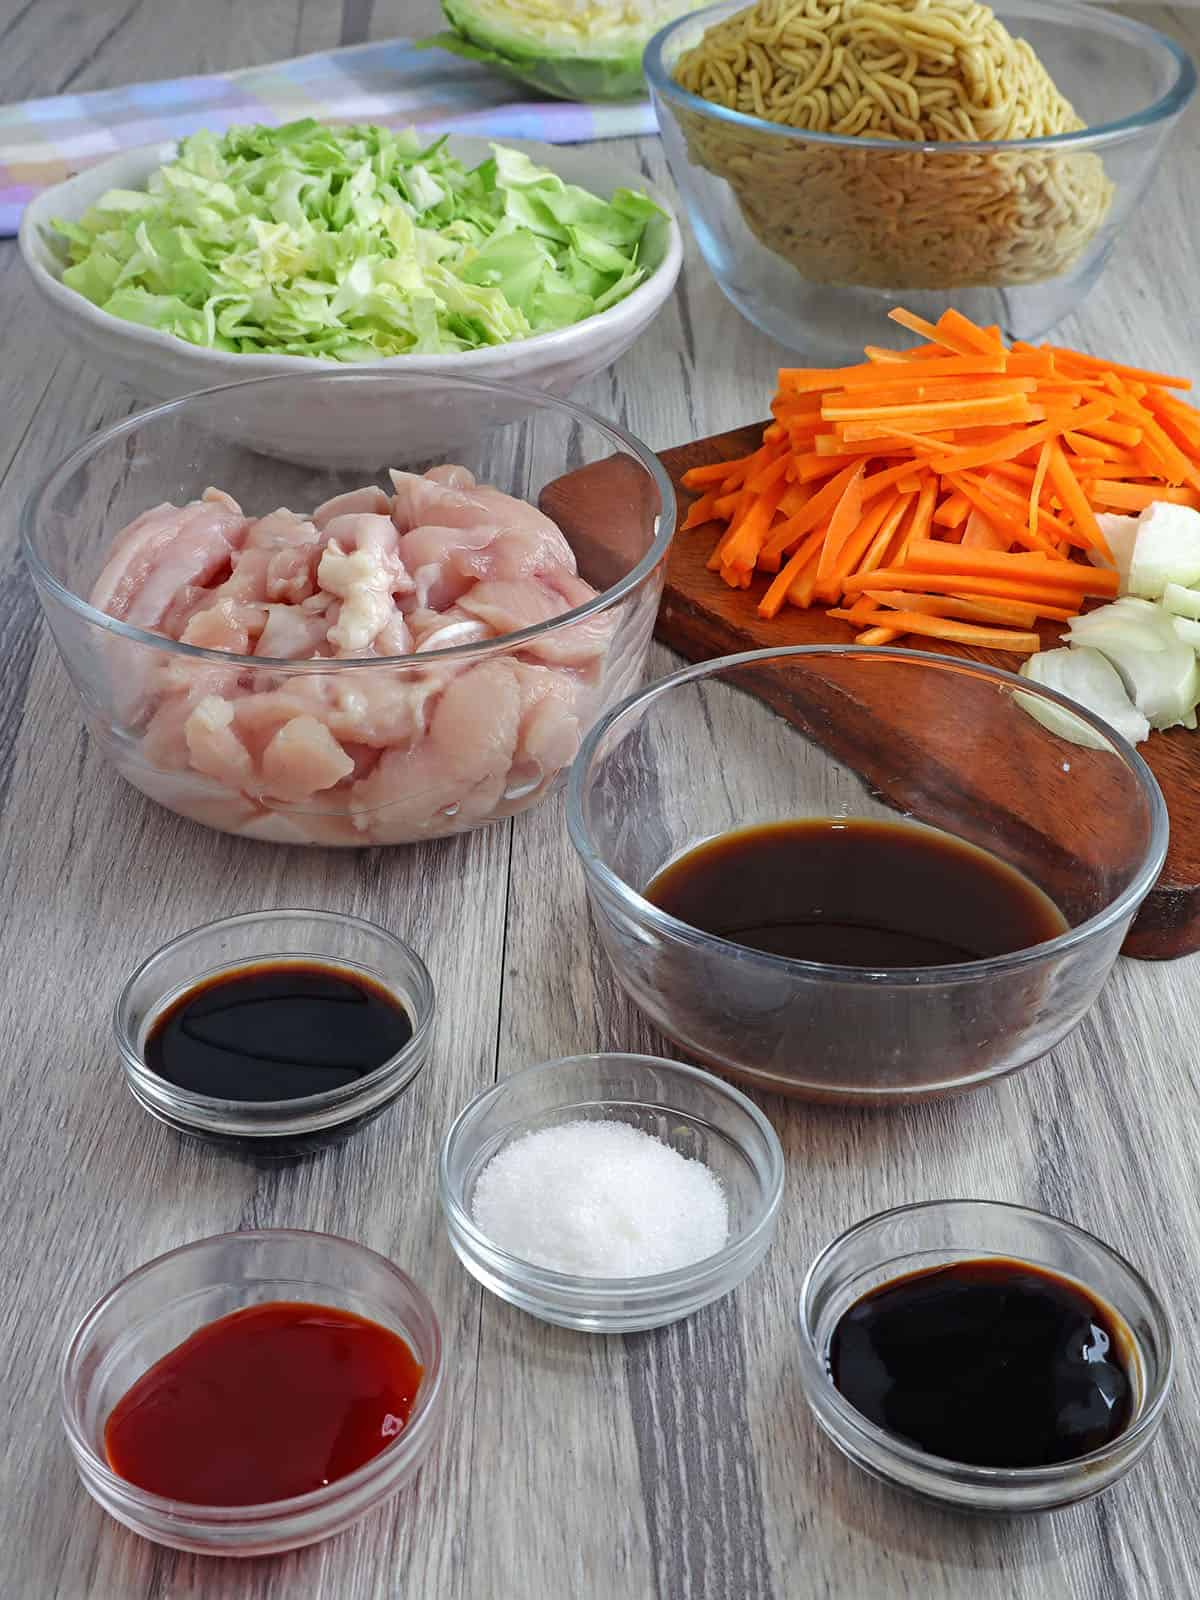 egg noodles, diced chicken breasts, julienned carrots, shredded cabbage, sauces in bowls